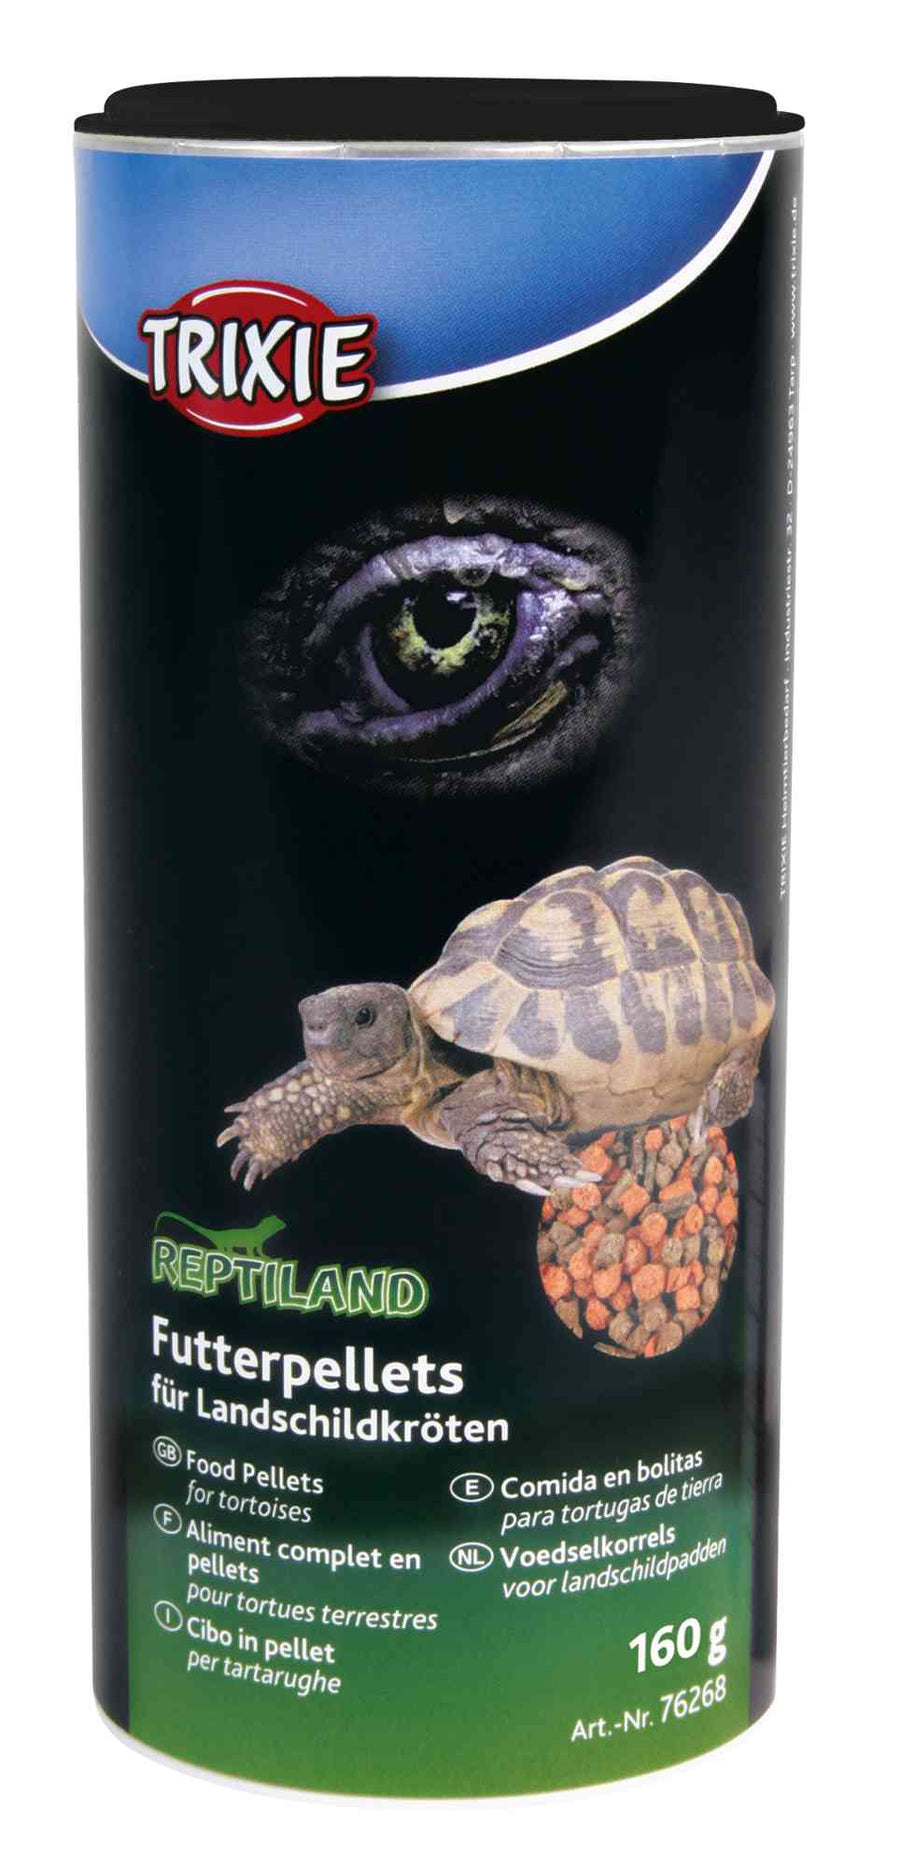 Food Pellets for Tortoises